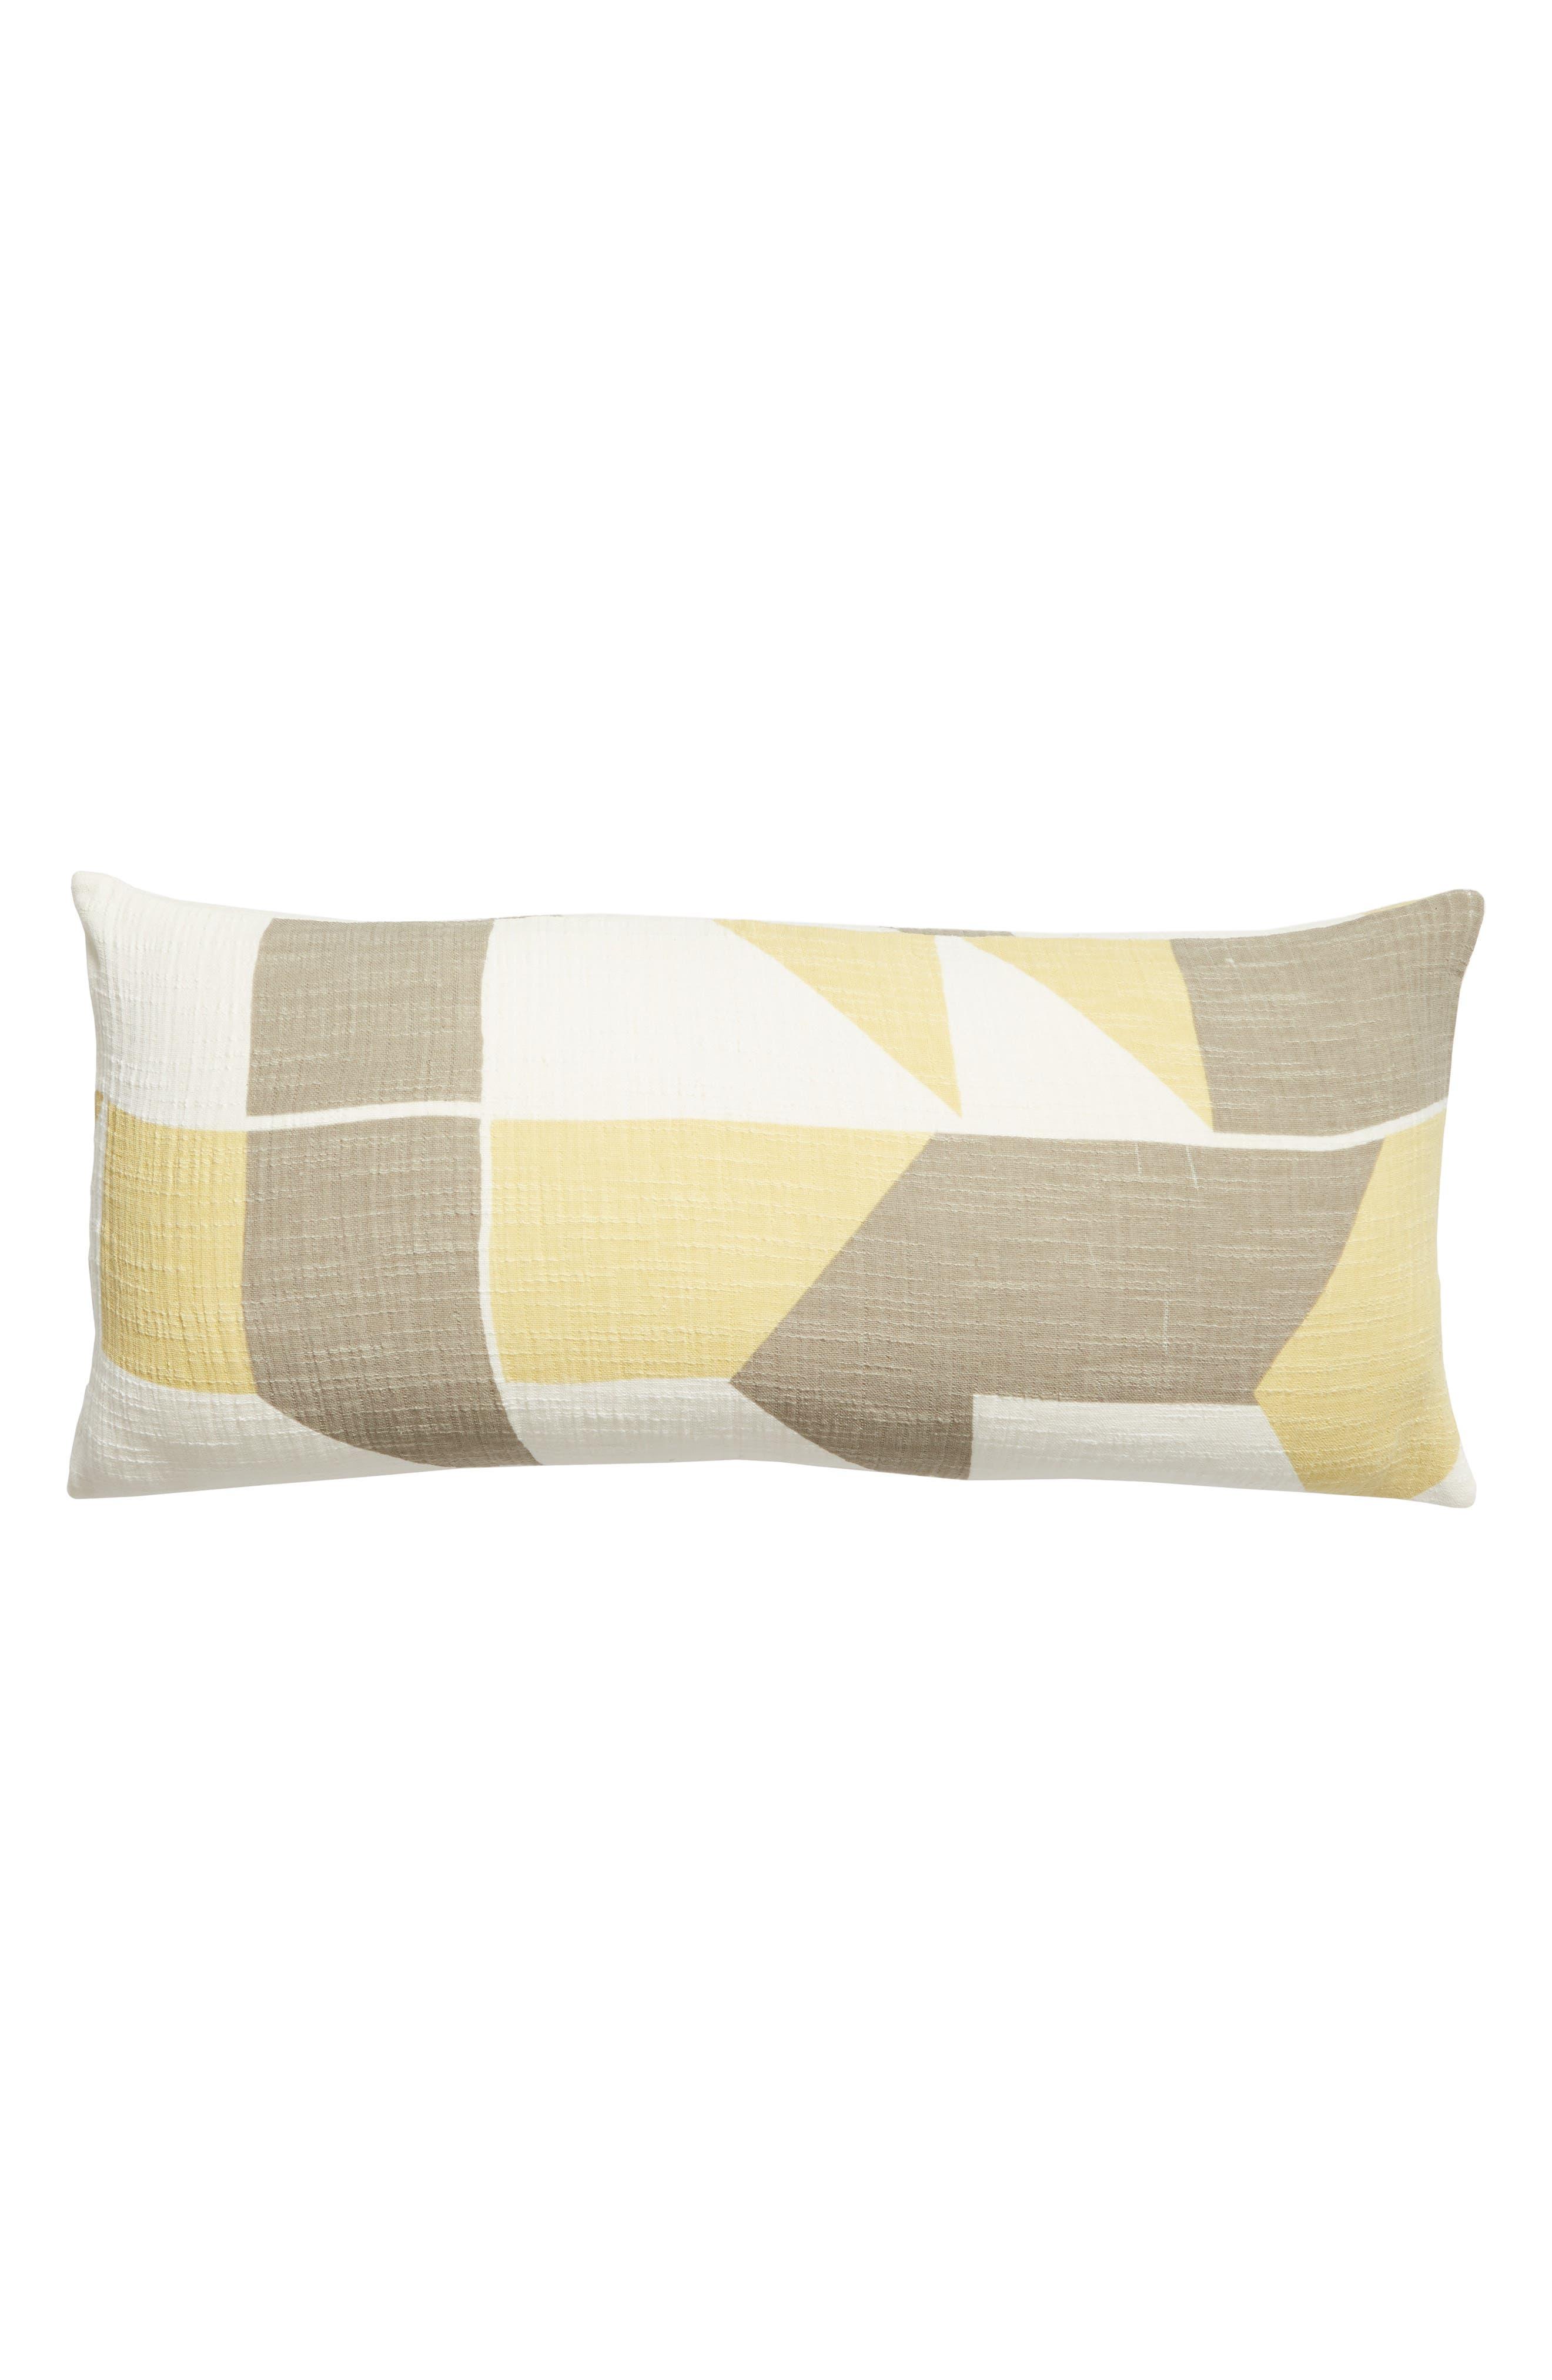 Print Accent Pillow, Main, color, OLIVE NILE MULTI